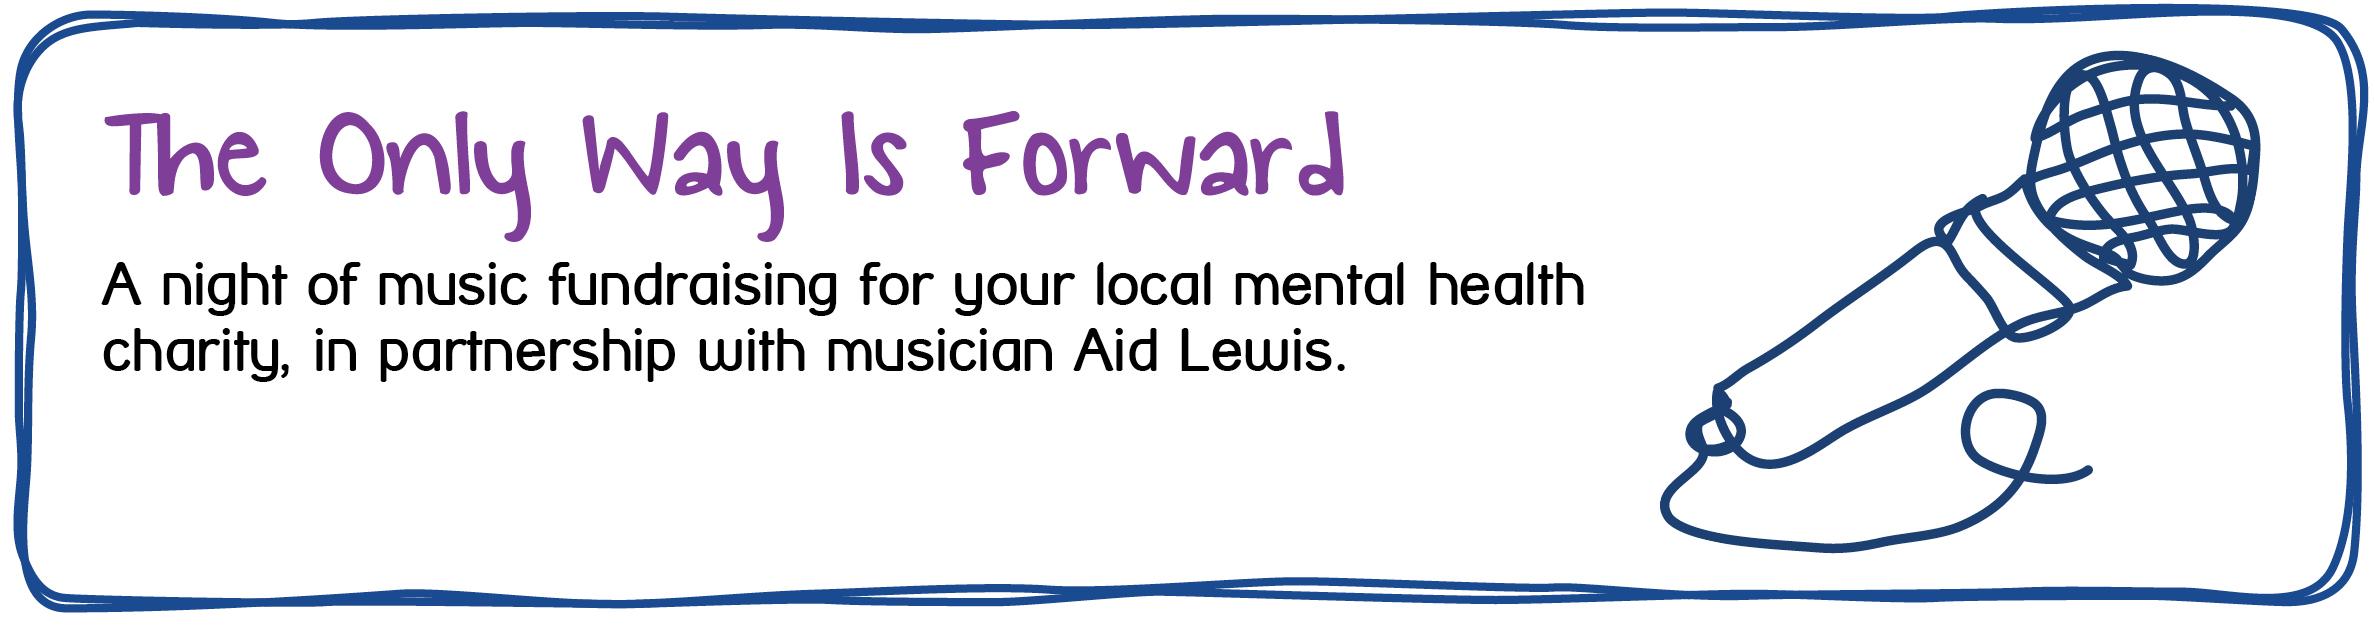 The Only Way Is Forward - A night of music fundraising for your local mental health charity, in partnership with musician Aid Lewis.